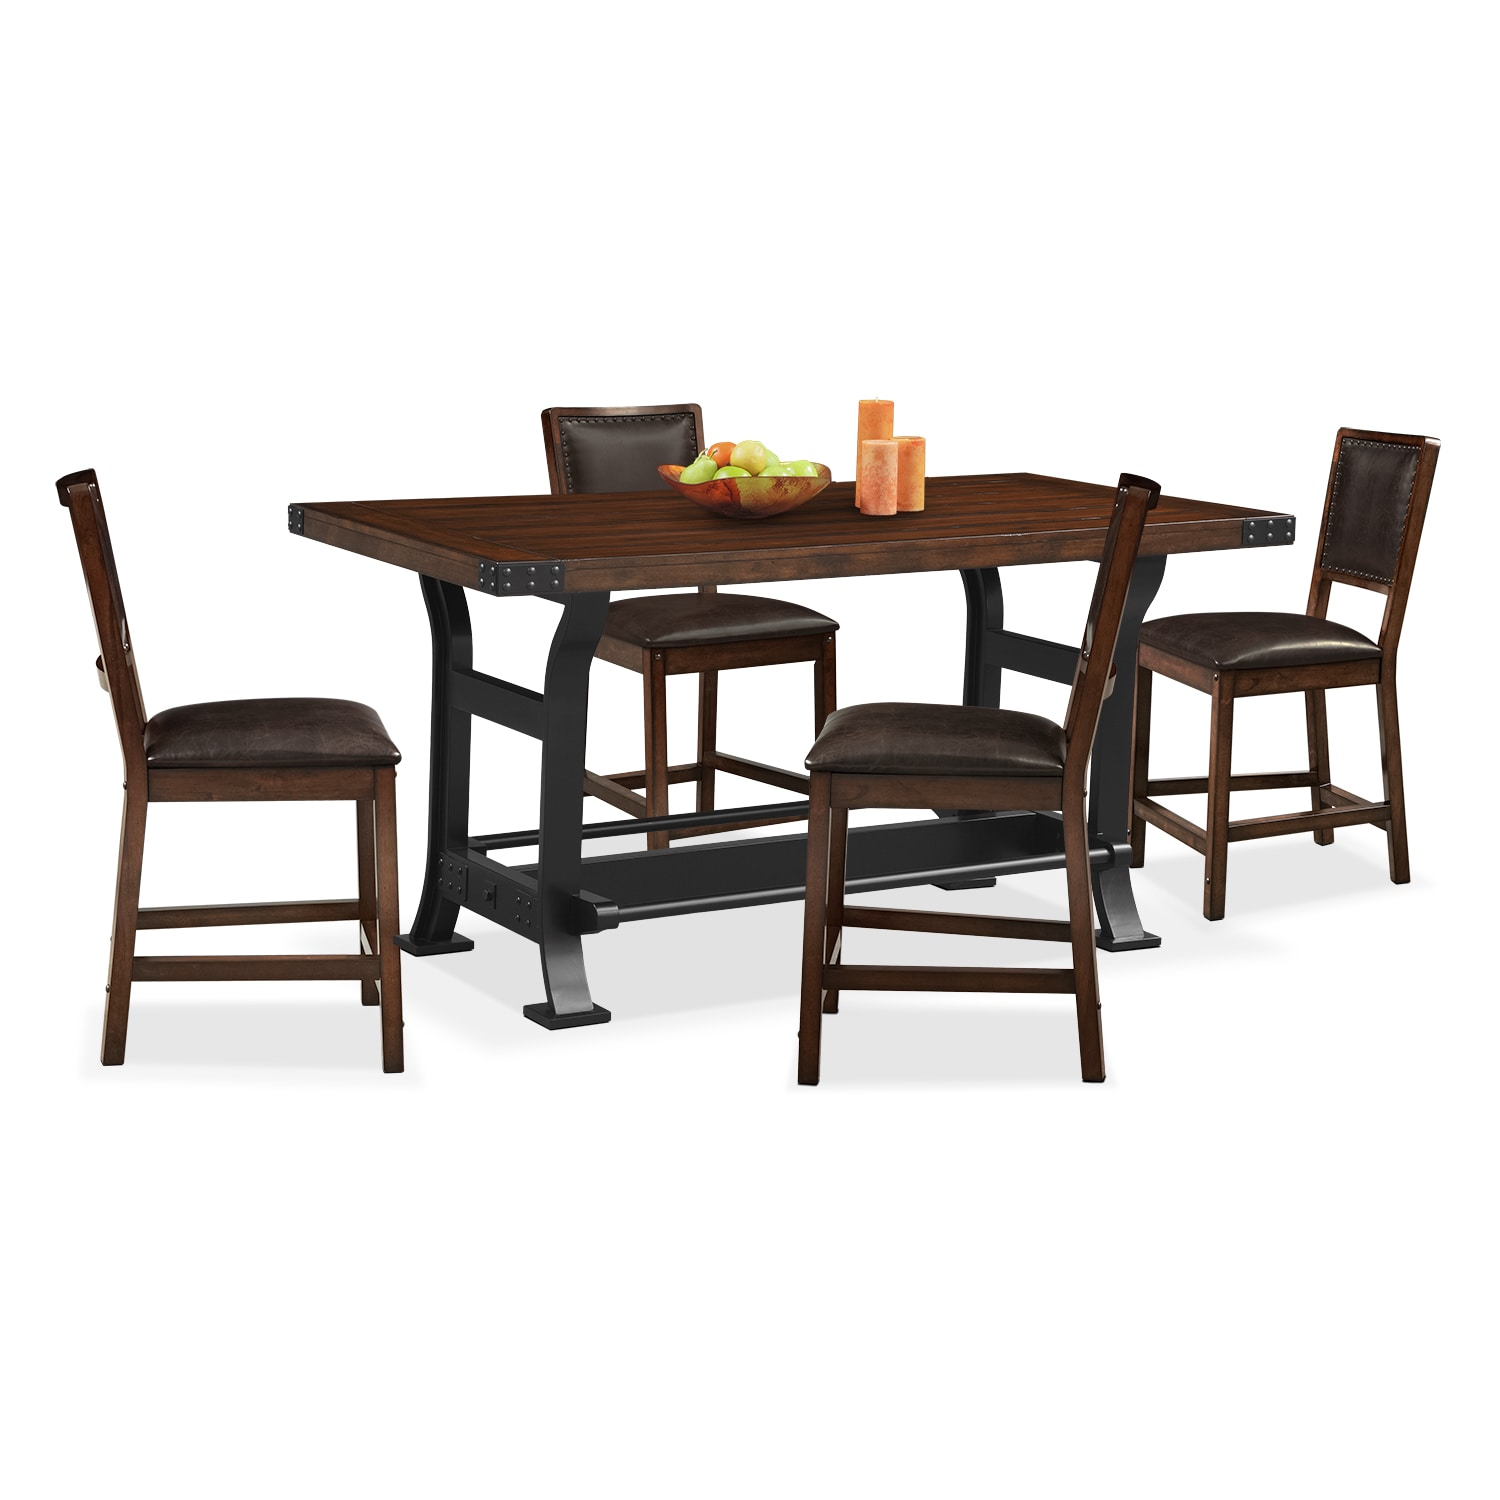 Dining Room Furniture - Newcastle Counter-Height Table and 4 Chairs - Mahogany